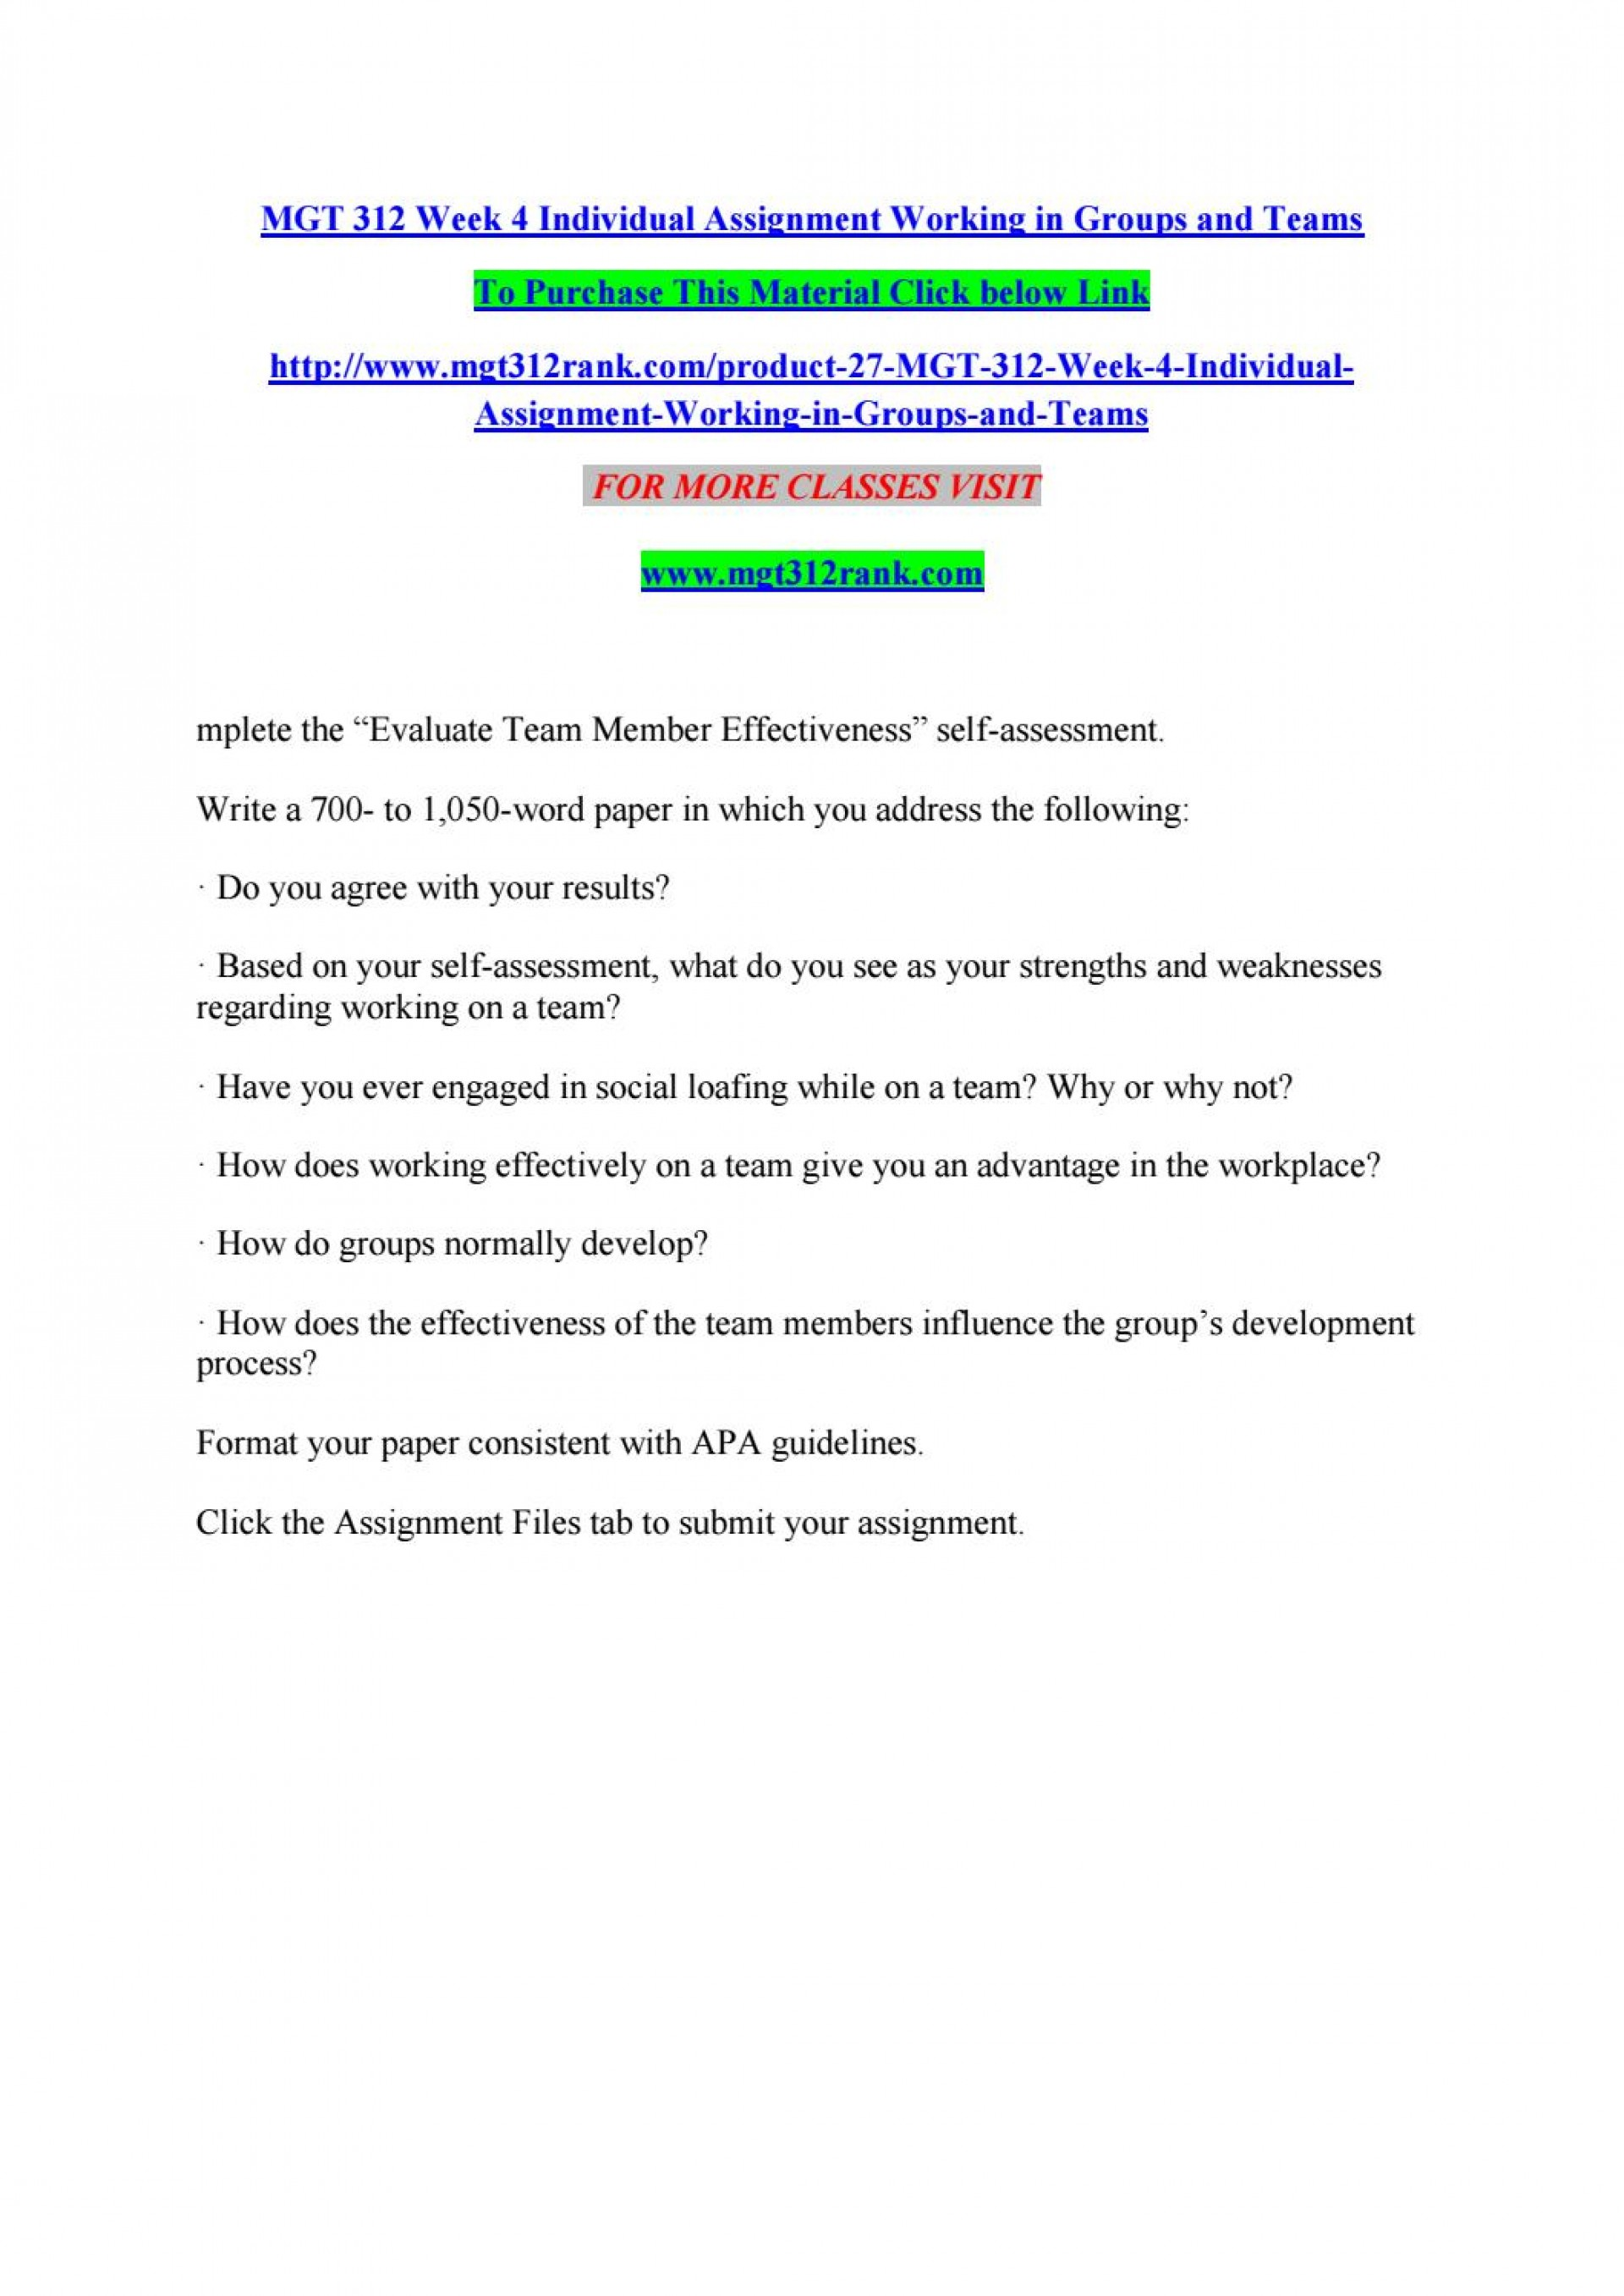 006 Word Essay Example Page 1 Rare 200 About Myself Sample 1920